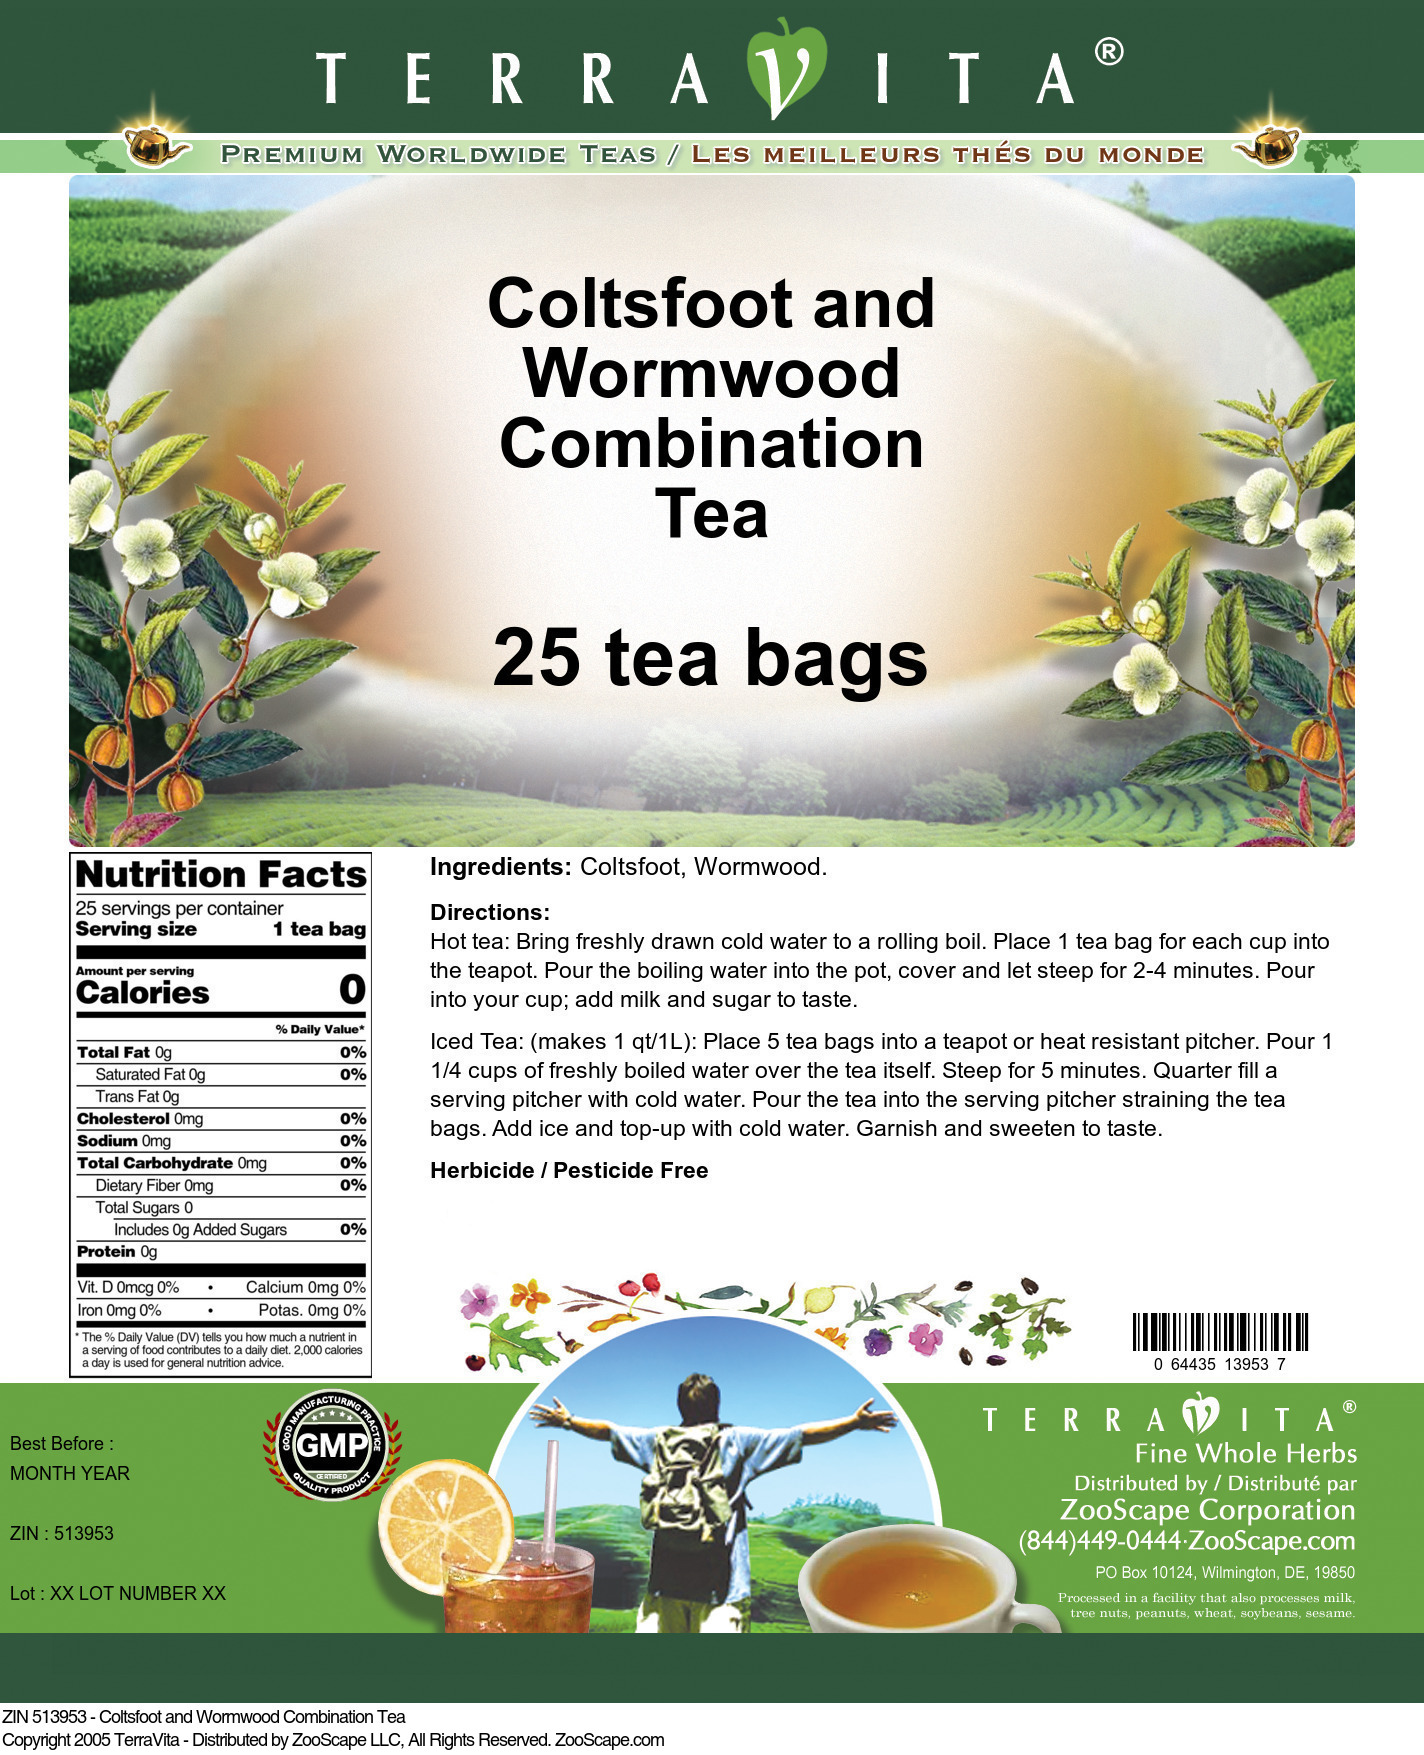 Coltsfoot and Wormwood Combination Tea